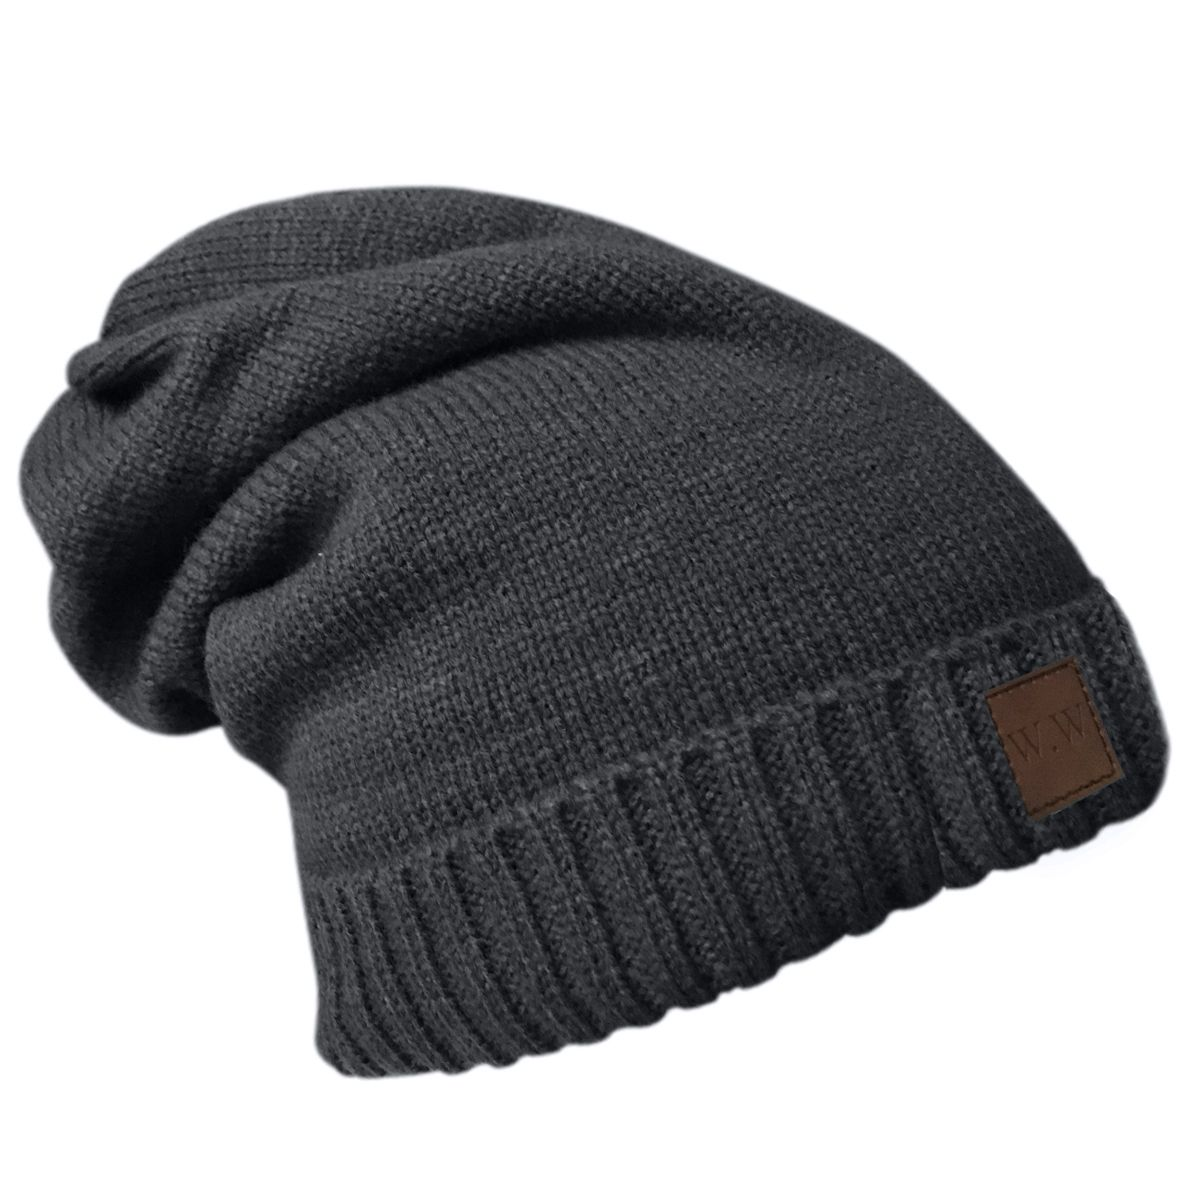 0f35c02debc Our Charcoal Grey Beanies  Classy. Understated. Versatile. Perfectly  unisex. Our premium fleece lined hats are made from 100% premium acrylic  knit with a ...